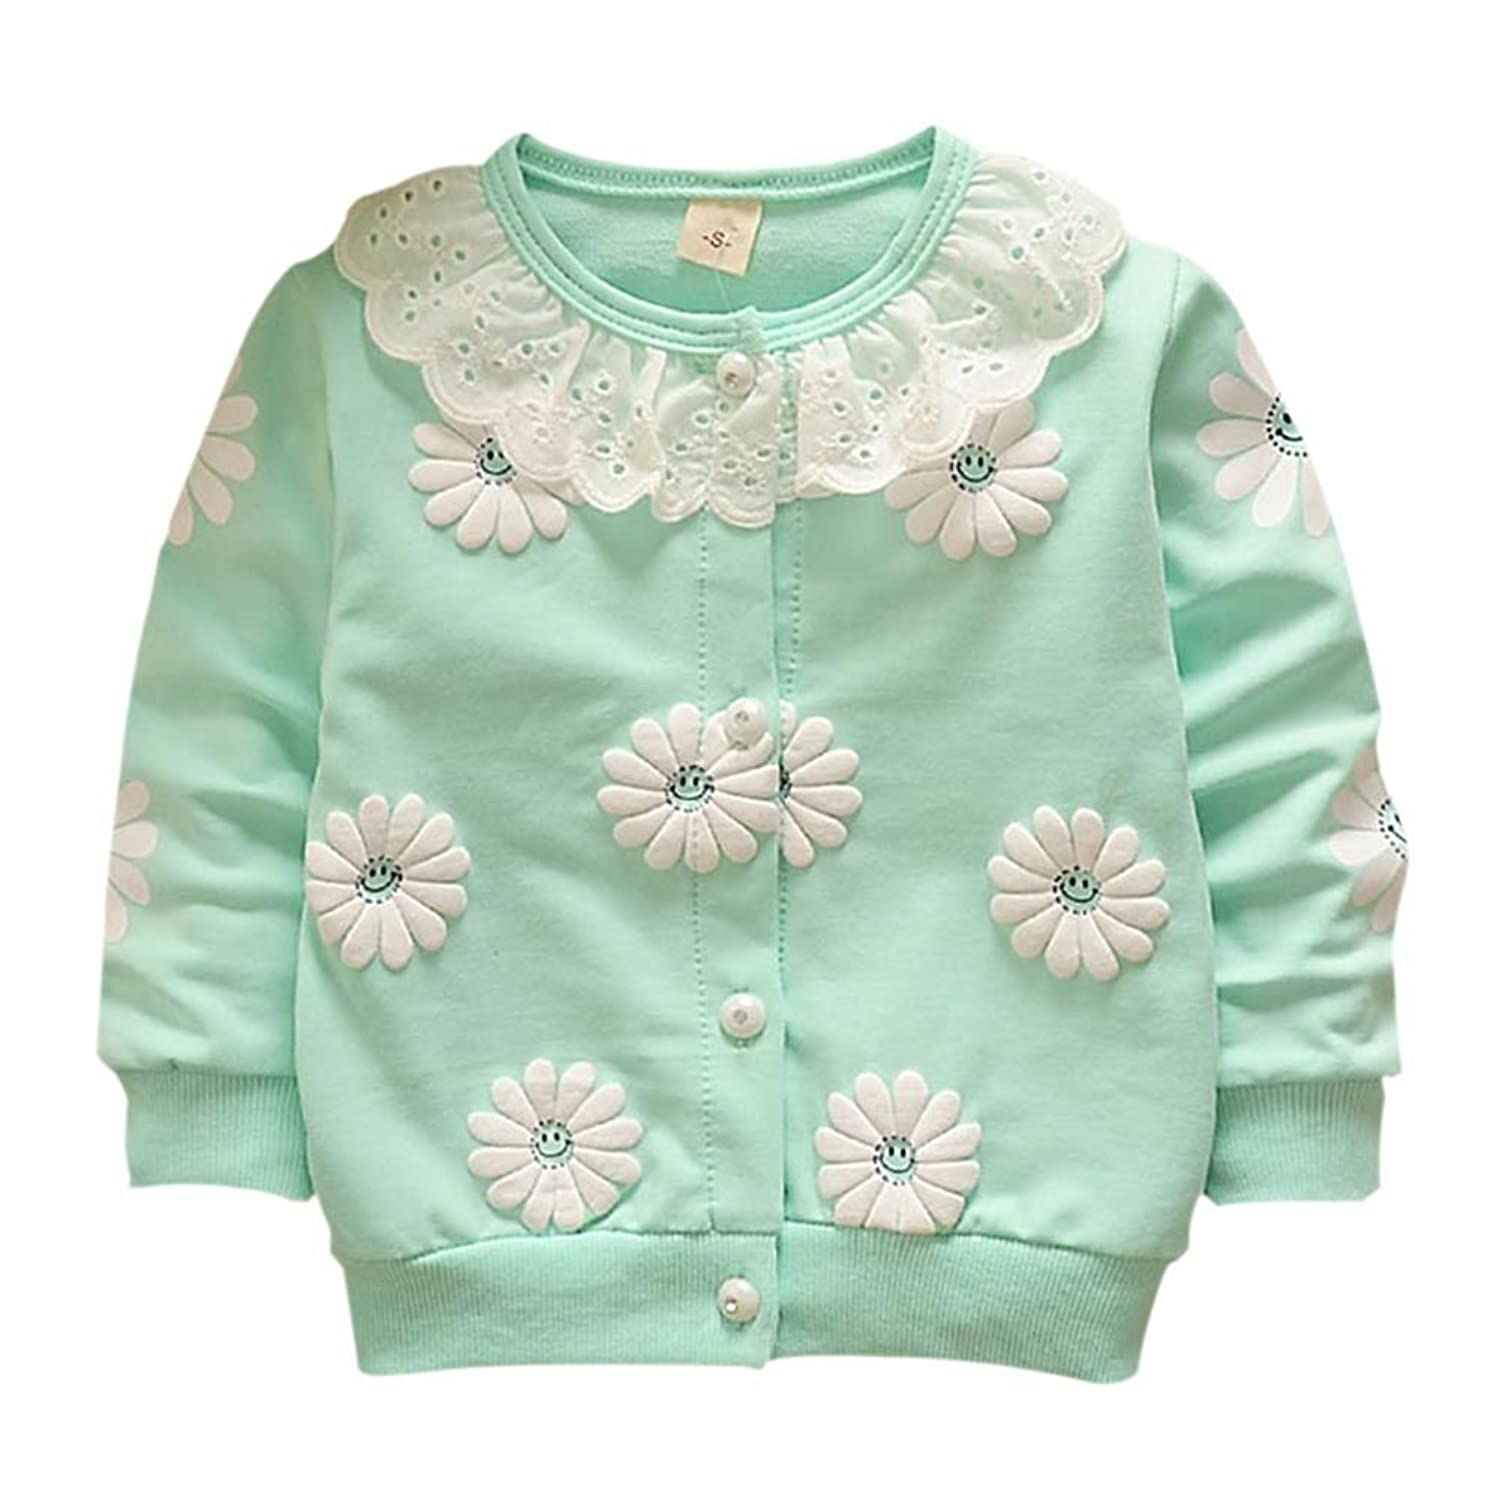 Qlan Baby Girls Long Sleeve Knit Cardigan Warm Outwear Knitwear Winter Soft Knitted for 6-36 Months